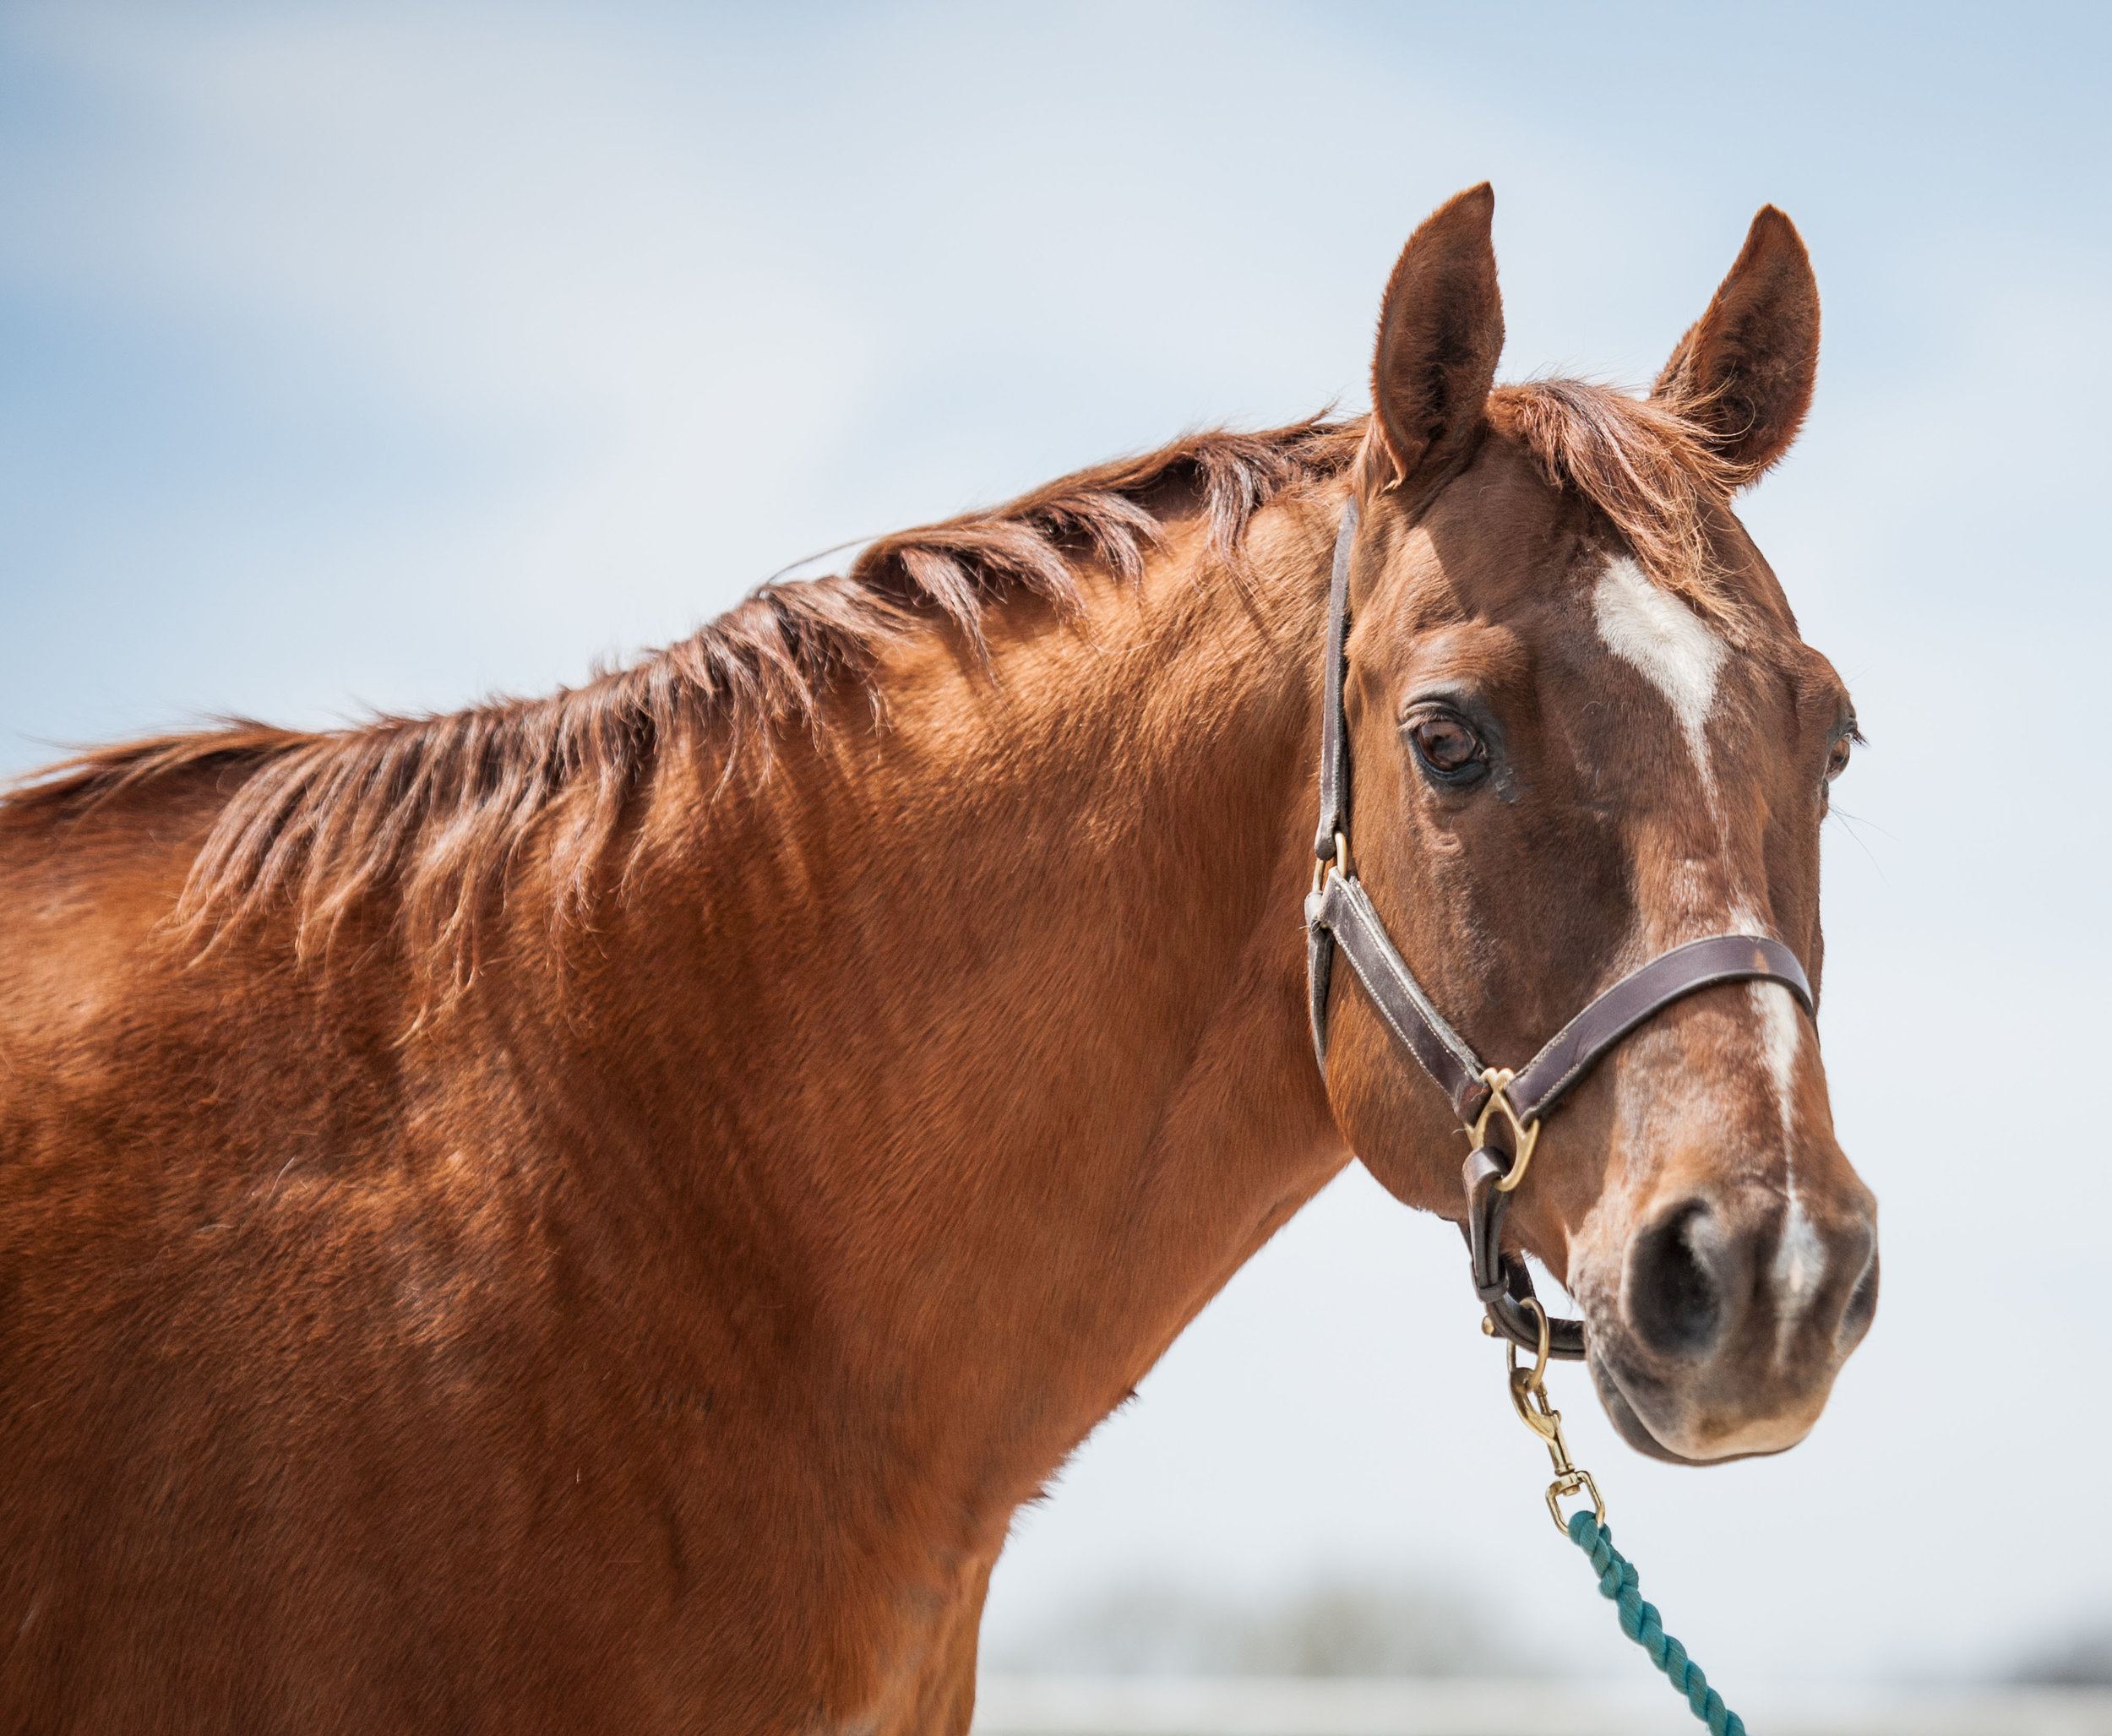 Junior      19 yr old Quarter Horse gelding